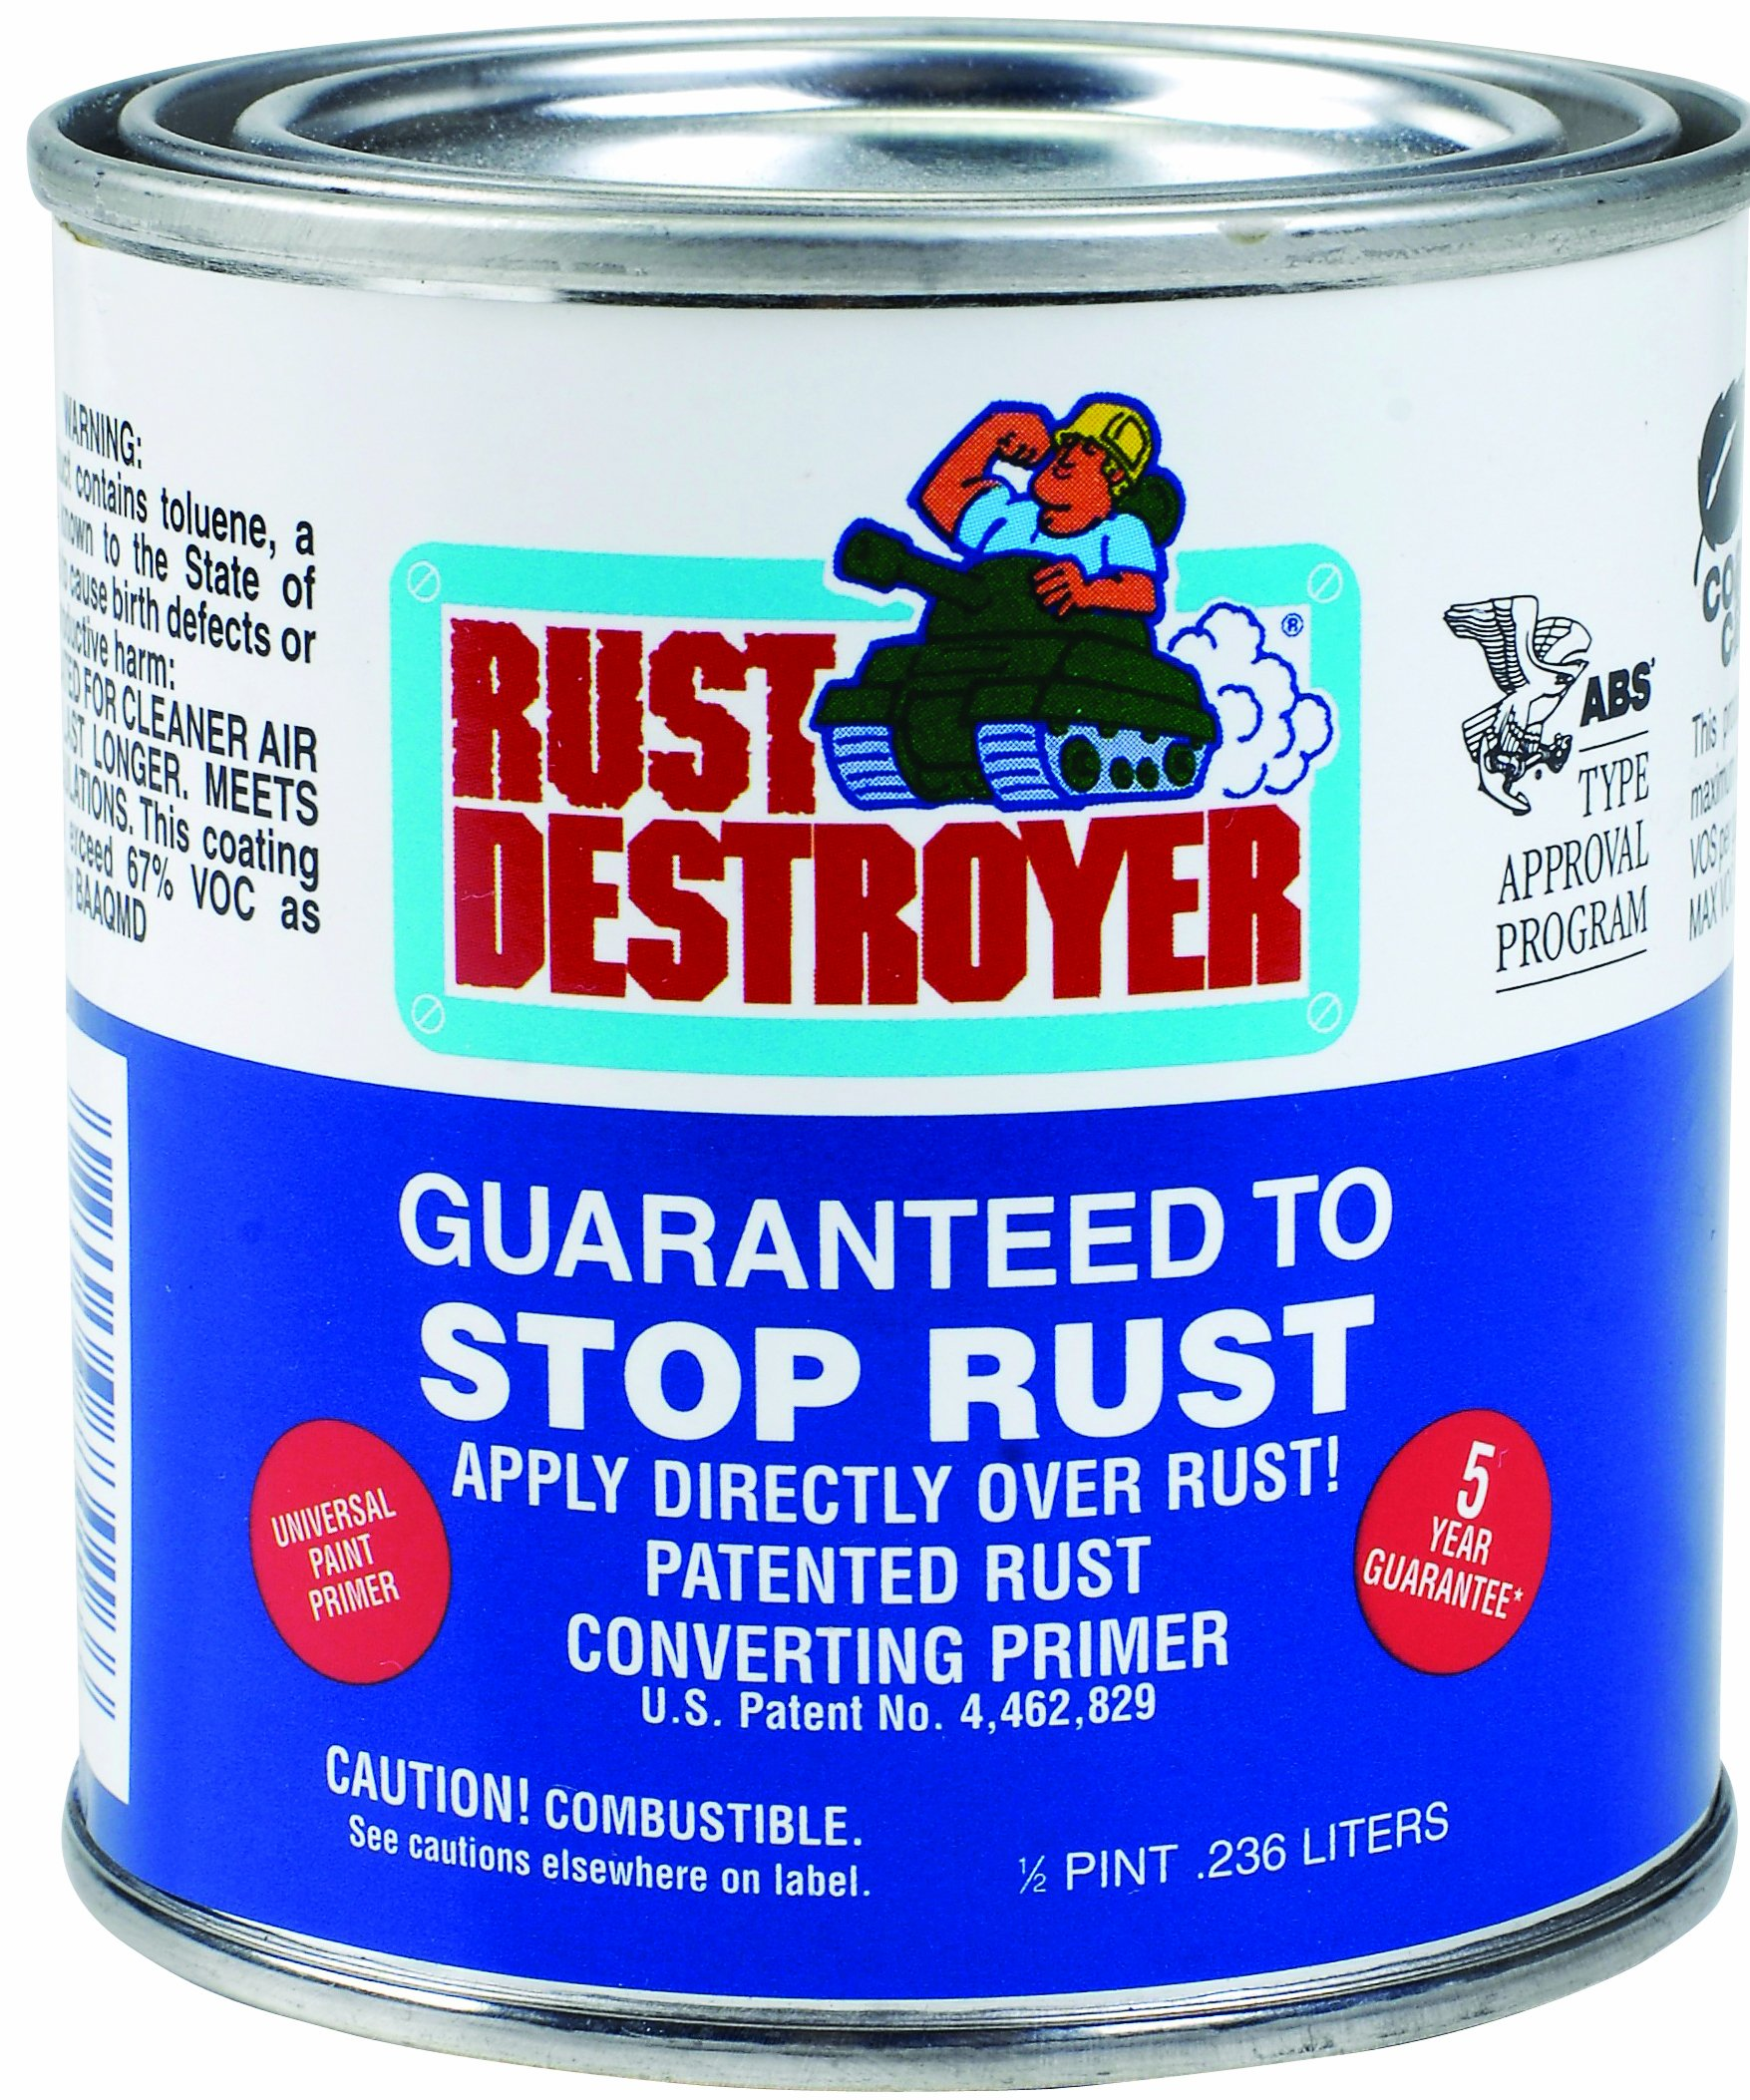 Advanced Protective Products Rust Destroyer Corrosion Prevention Primer, 1/2-Pint